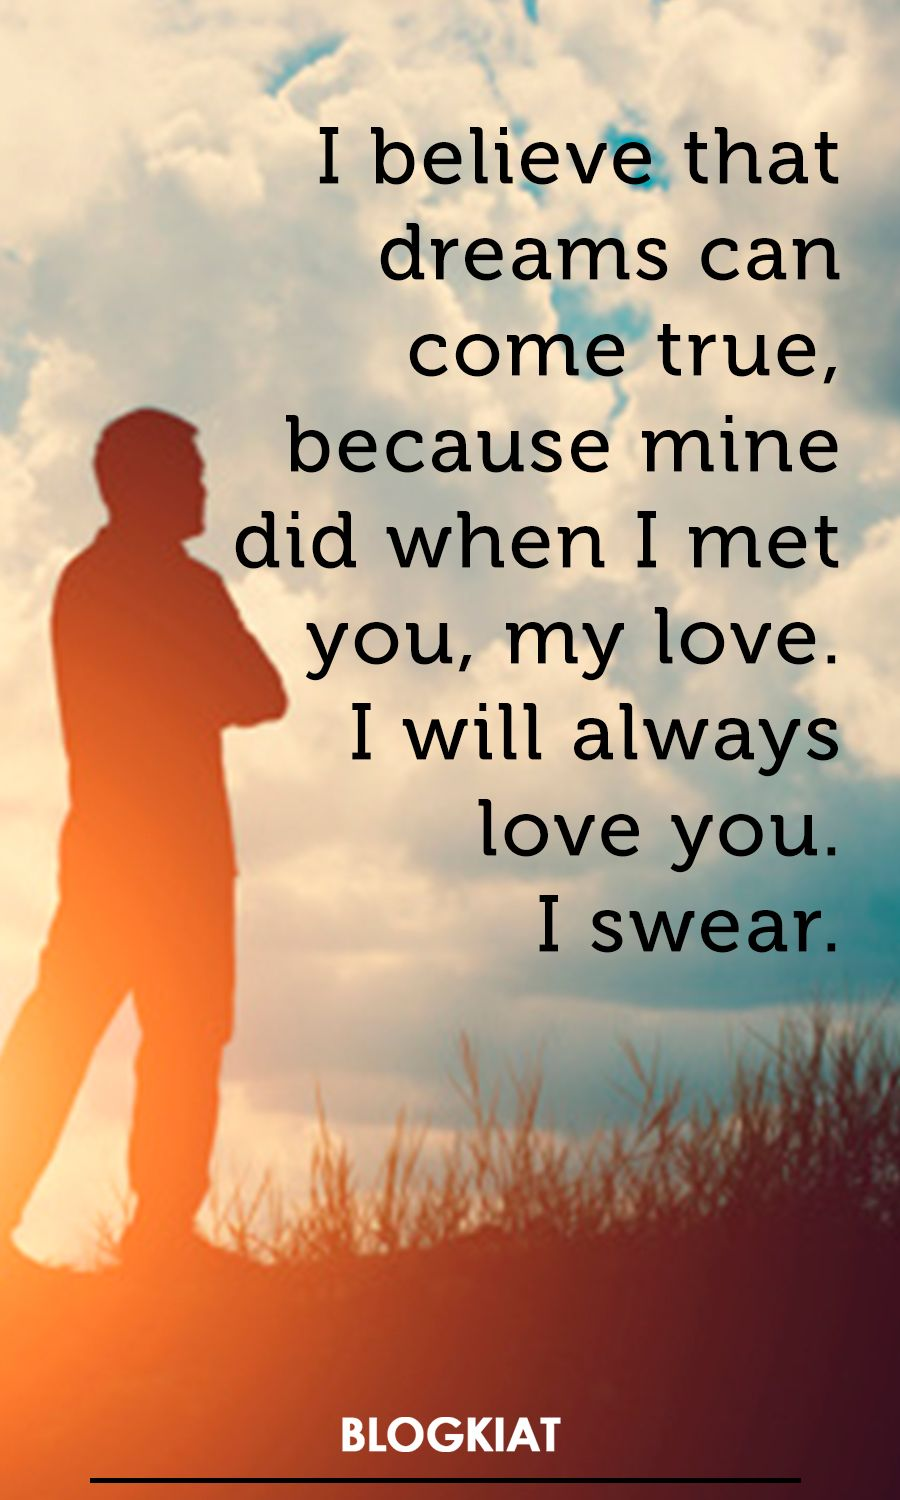 Cute Love Quotes For Him Quotes For Boyfriends Cute Love